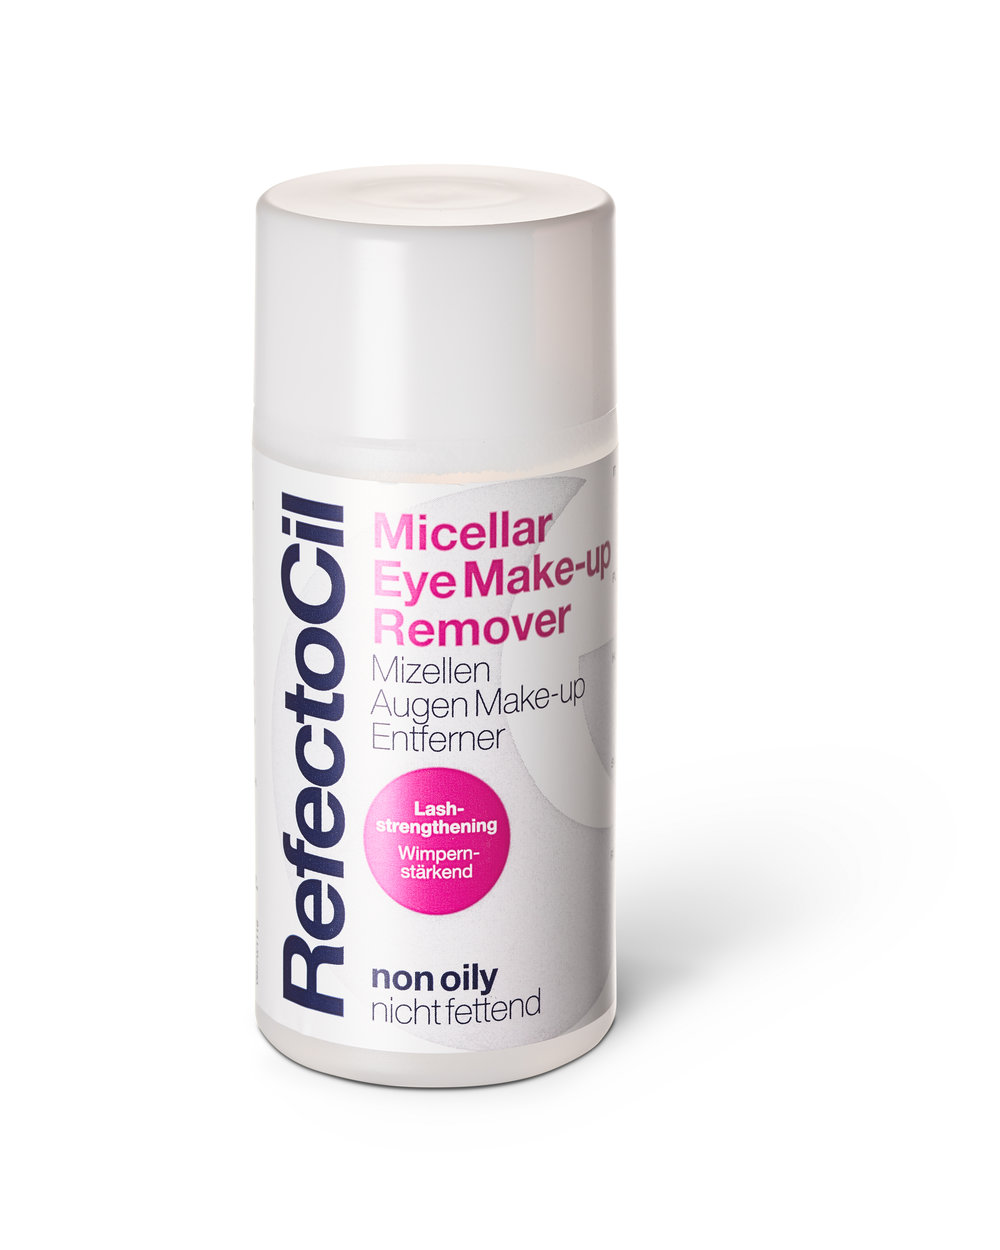 Micellar Eye Make-Up Remover